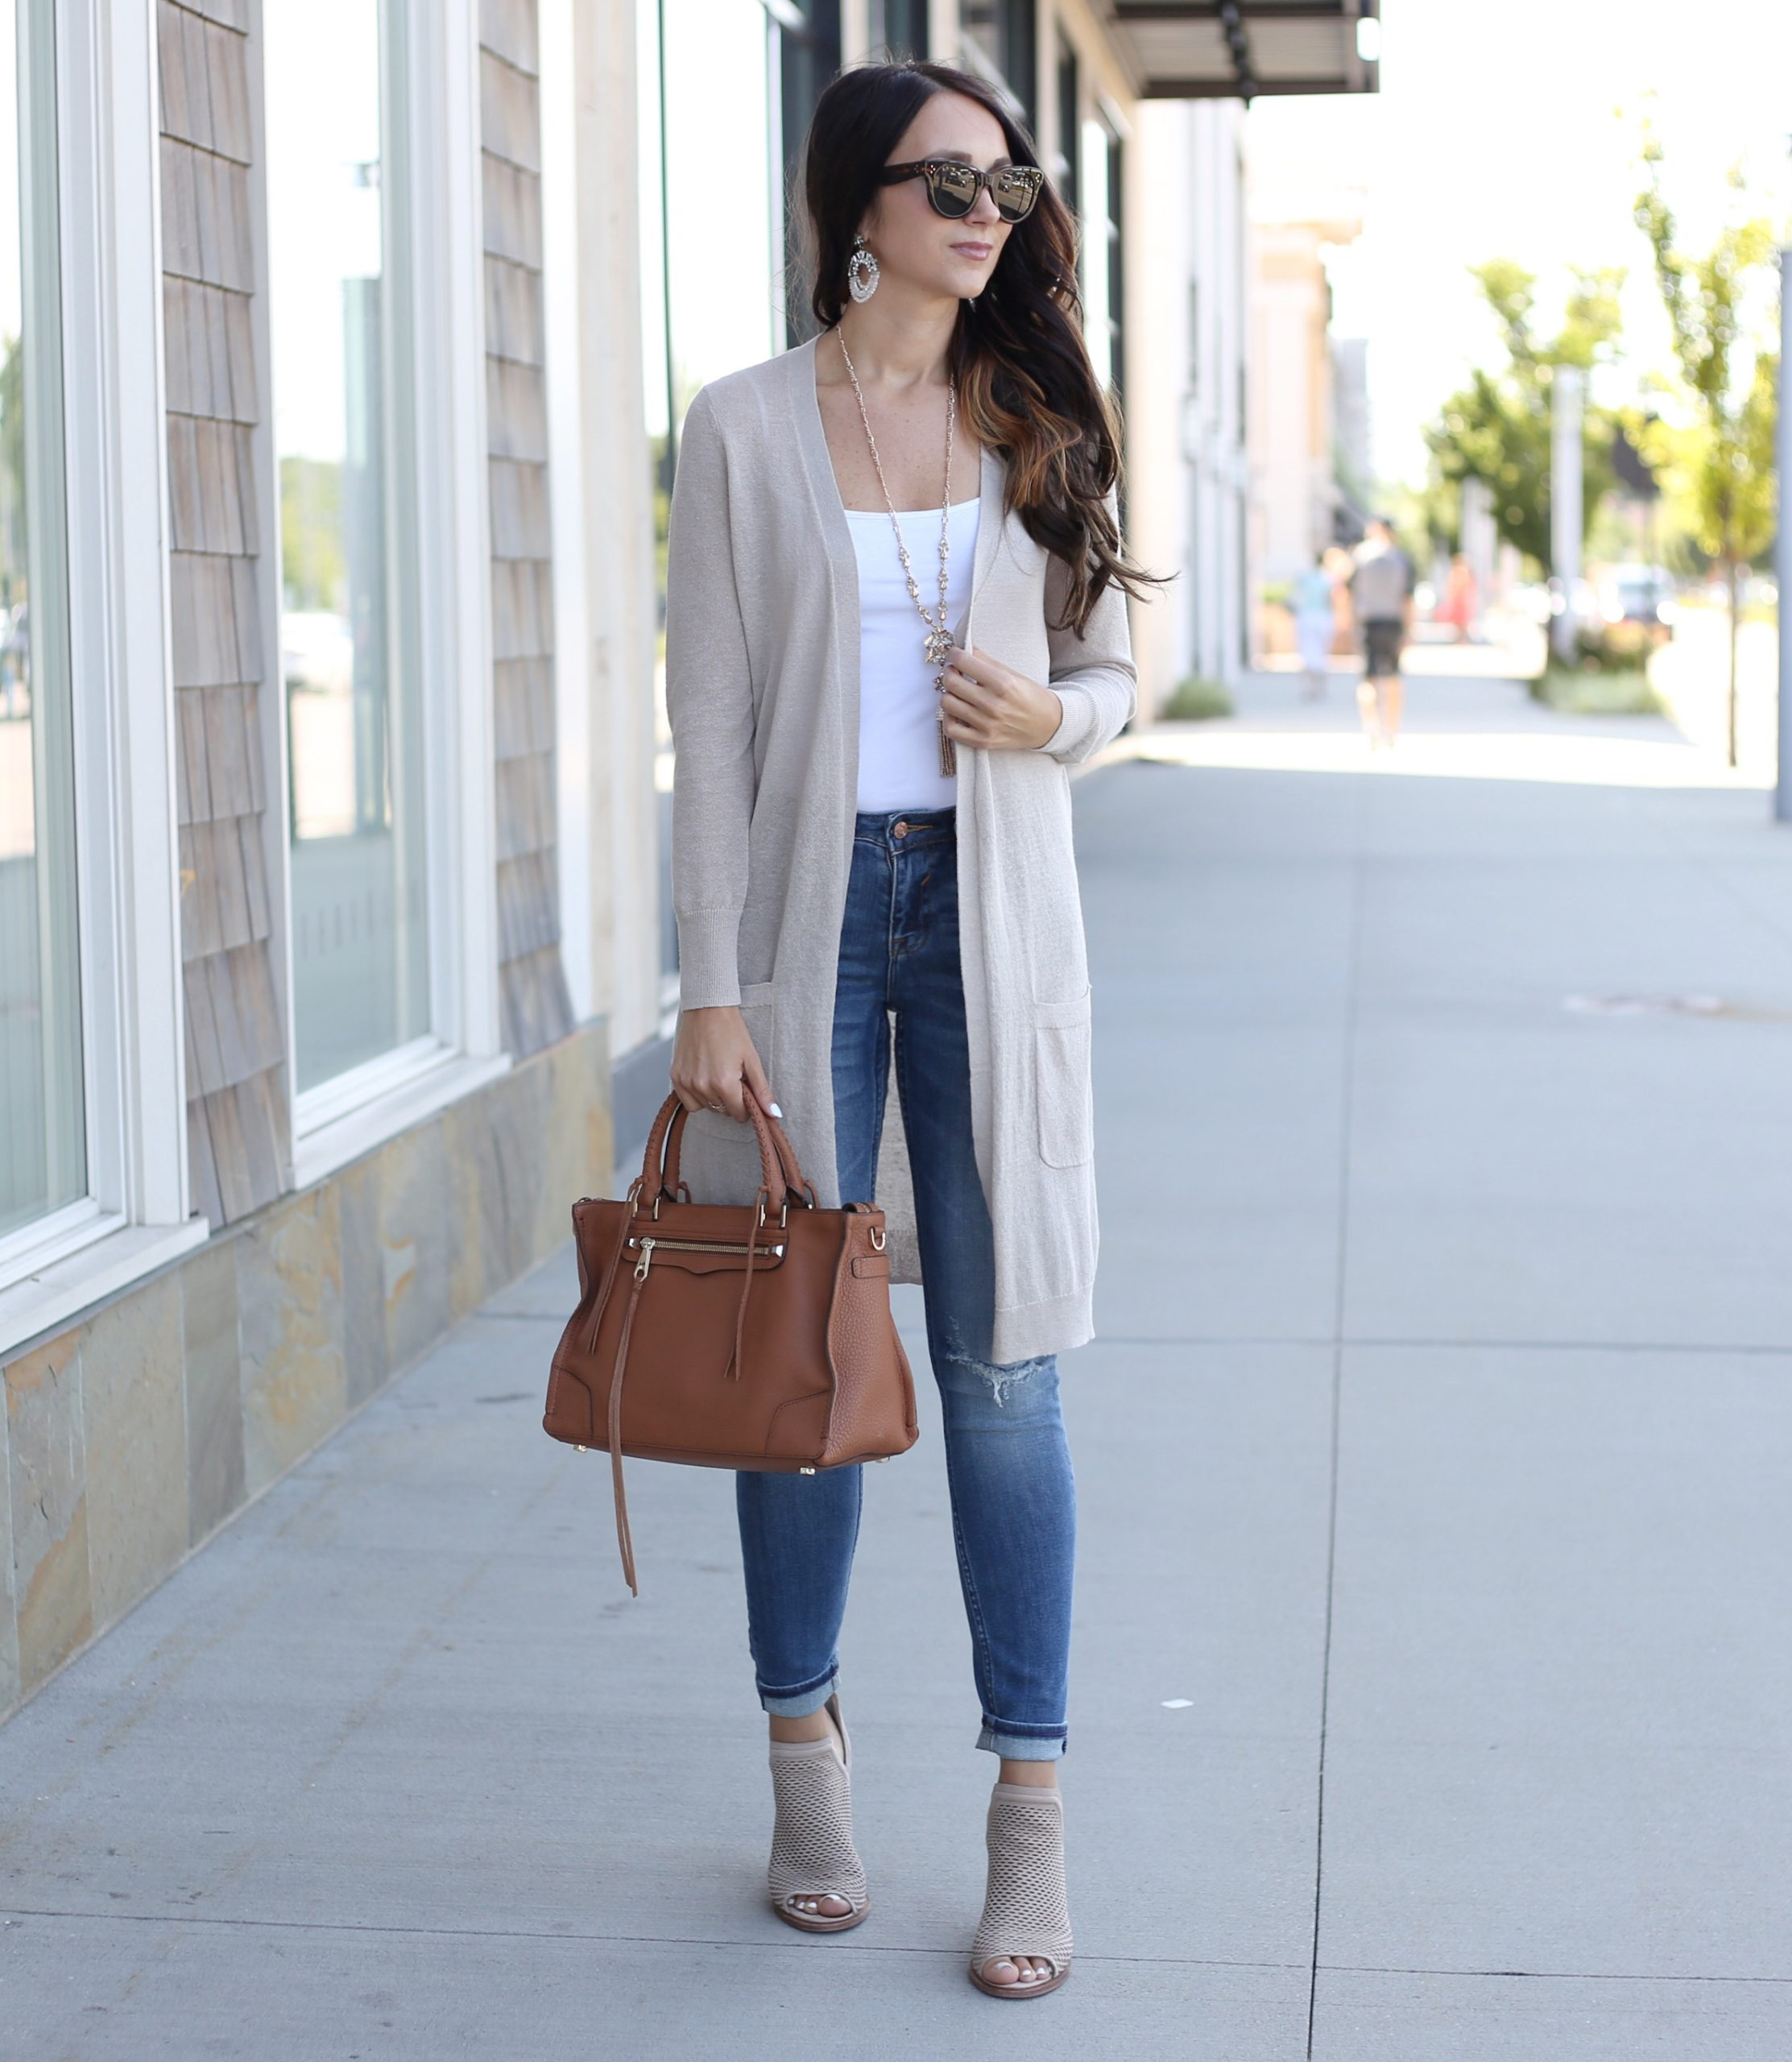 blogger Anna Monteiro wearing caslon linen blend cardigan from nordstrom in fall wardrobe update